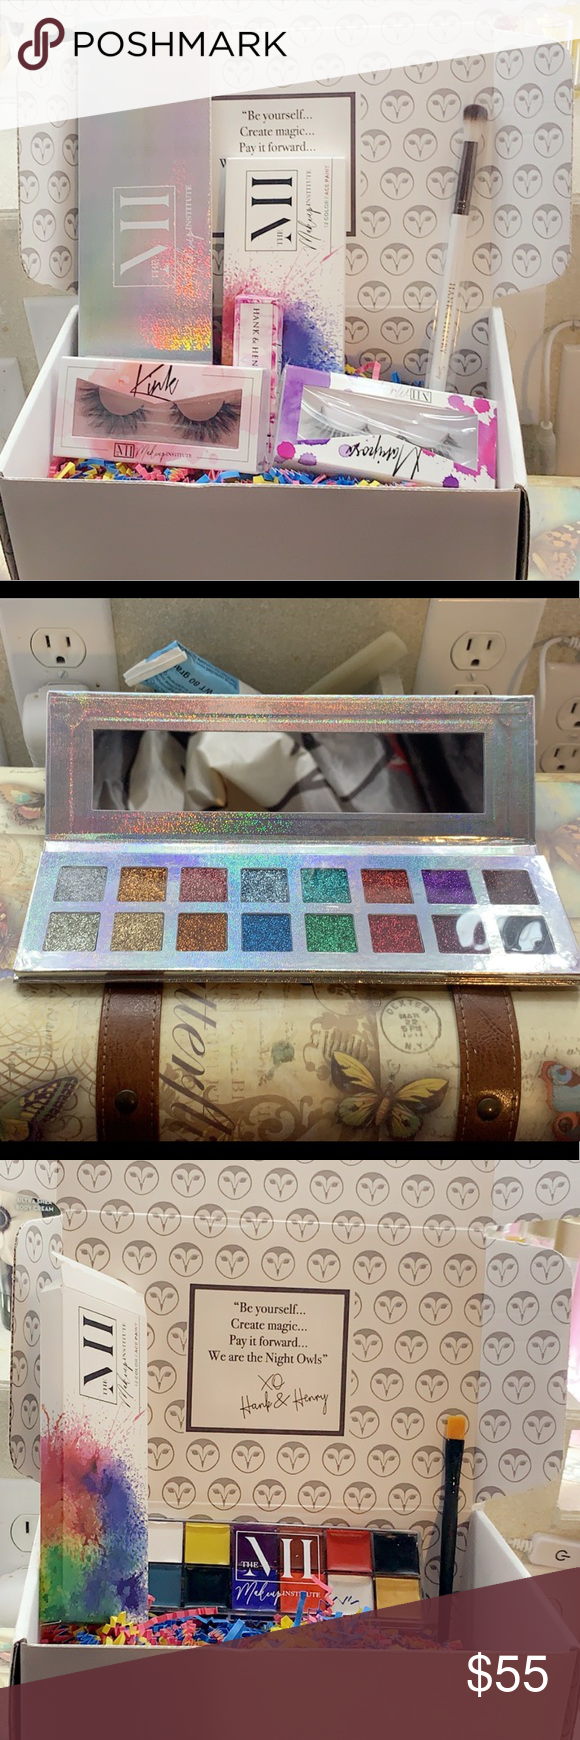 6 pc Hank and Henry/makeup institute box I bought the